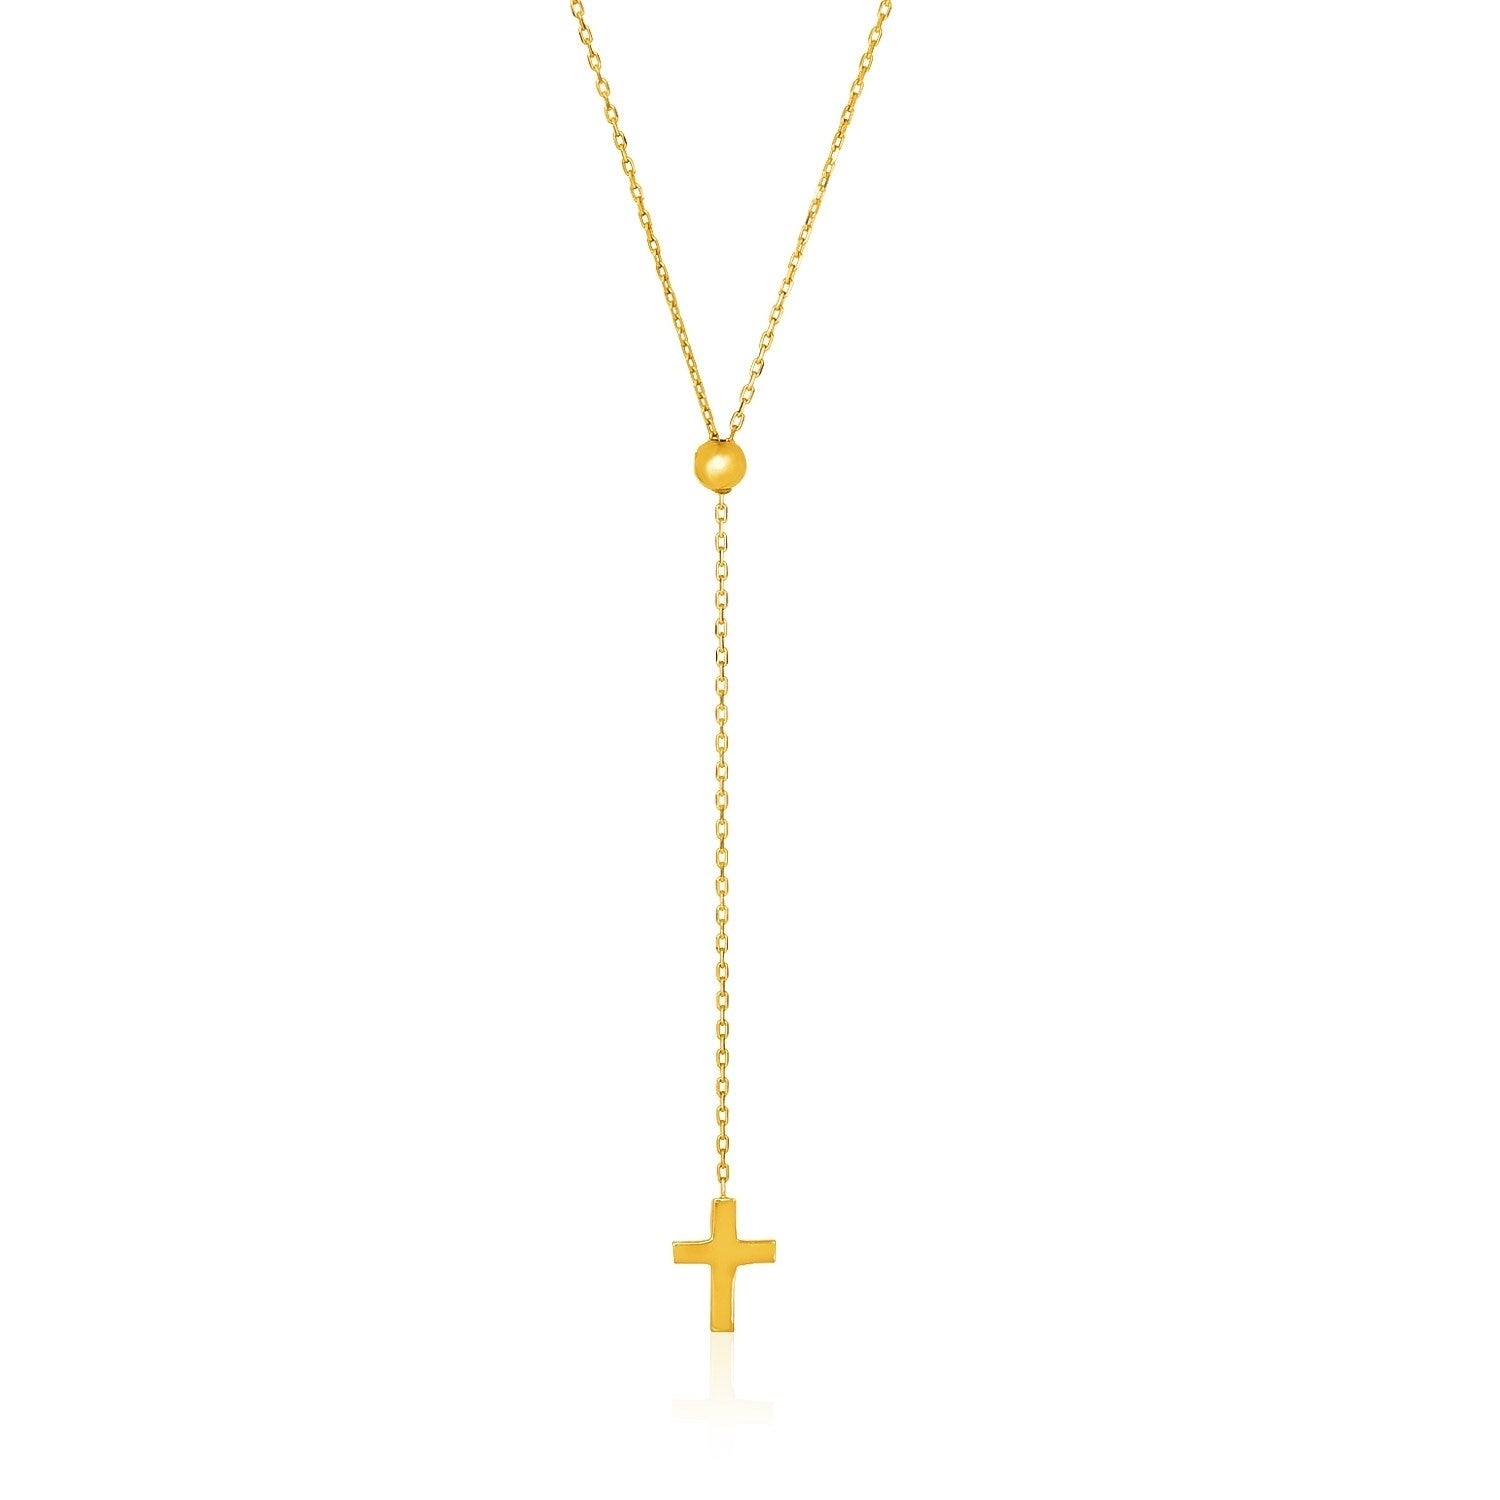 14K Yellow Gold Adjustable Cable Chain Necklace With Cross With Most Recent Long Link Cable Chain Necklaces (View 3 of 25)